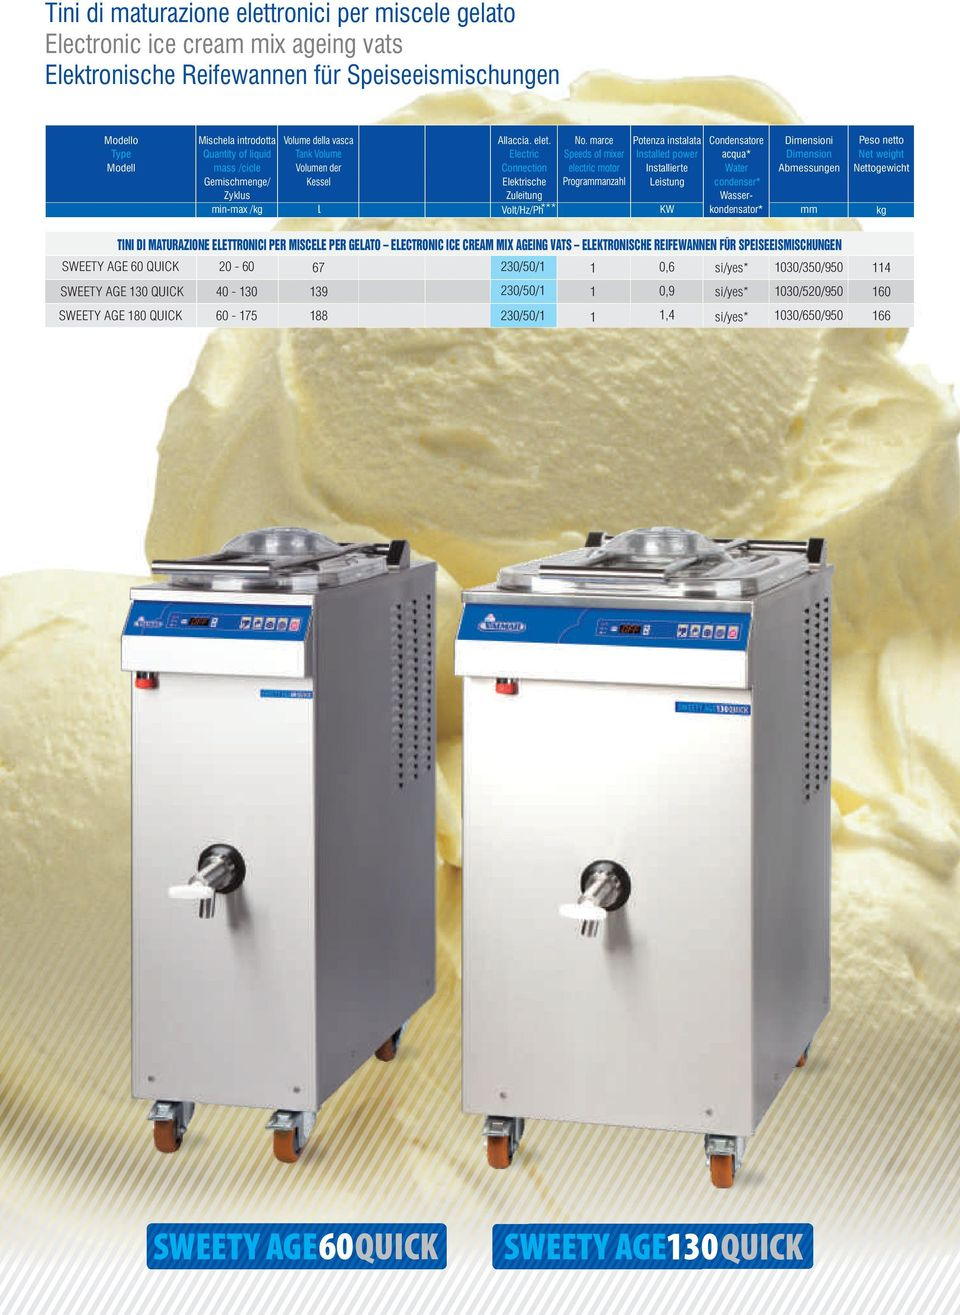 marce Speeds of mixer electric motor Prograanzahl Potenza instalata Condensatore Installed power acqua* Installierte Water Leistung condenser* Wasserkondensator* KW Dimensioni Dimension Abmessungen